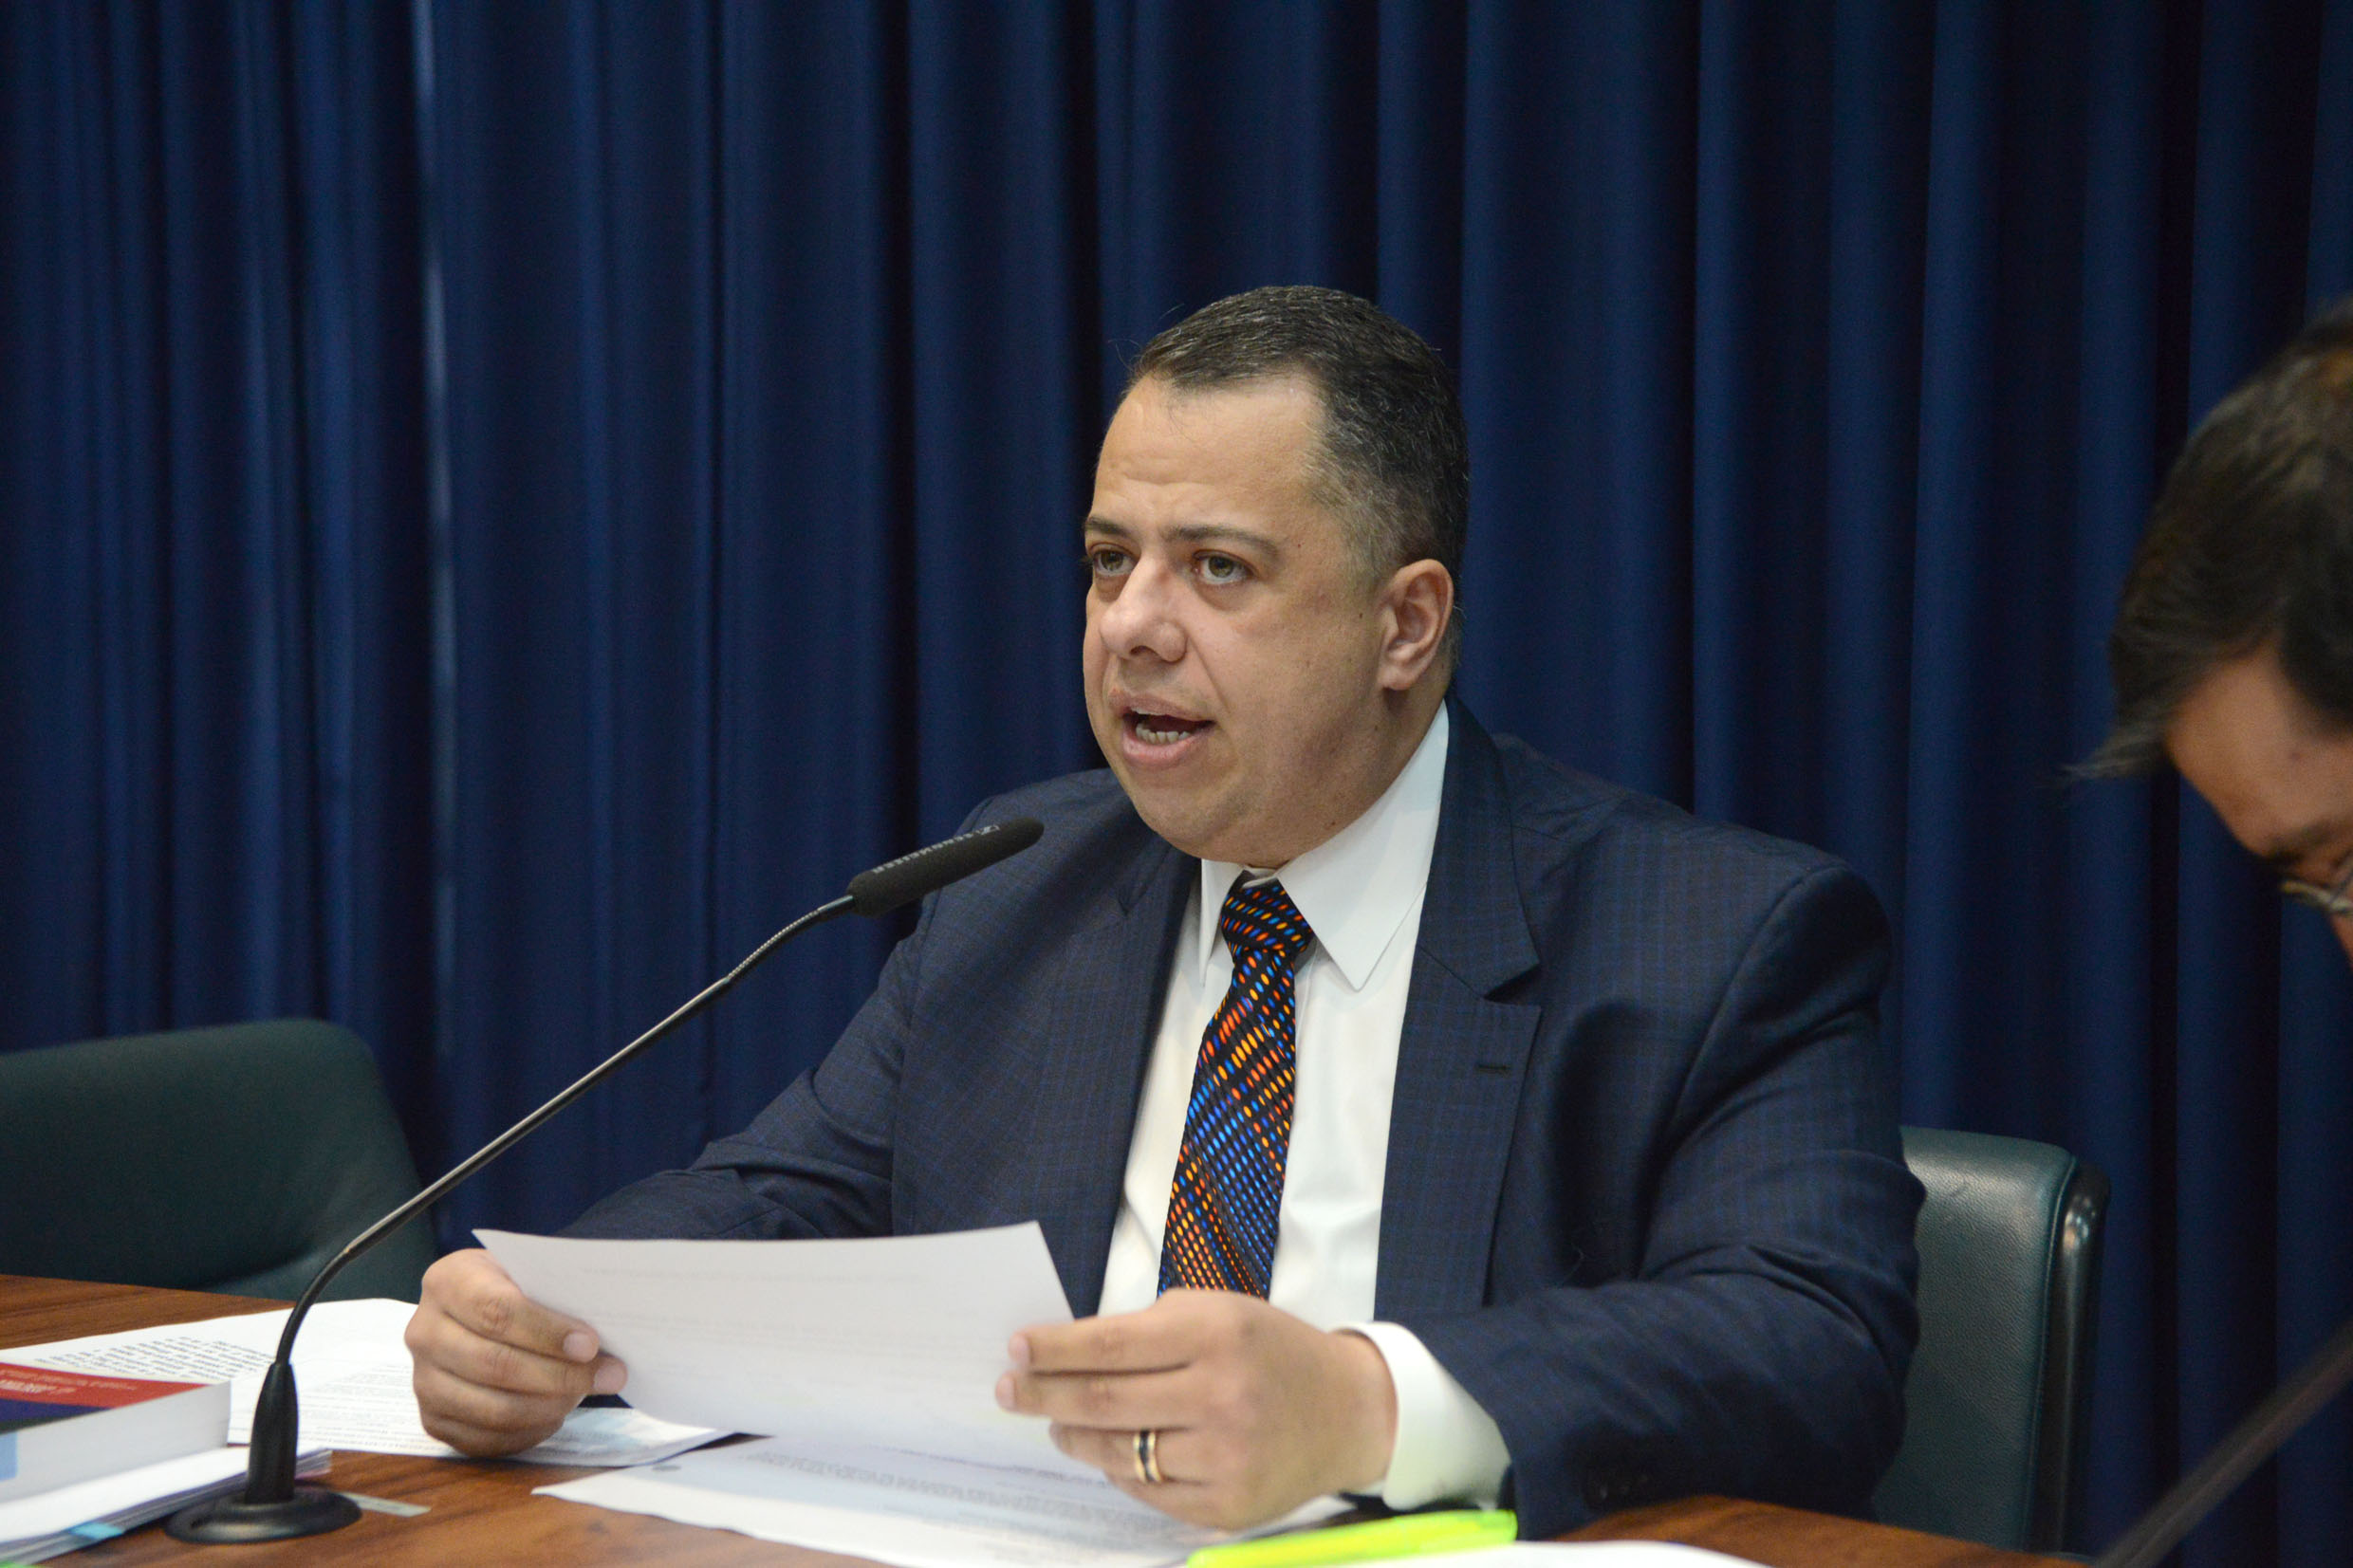 Wellington Moura preside a CPI<a style='float:right' href='https://www3.al.sp.gov.br/repositorio/noticia/N-09-2019/fg239693.jpg' target=_blank><img src='/_img/material-file-download-white.png' width='14px' alt='Clique para baixar a imagem'></a>